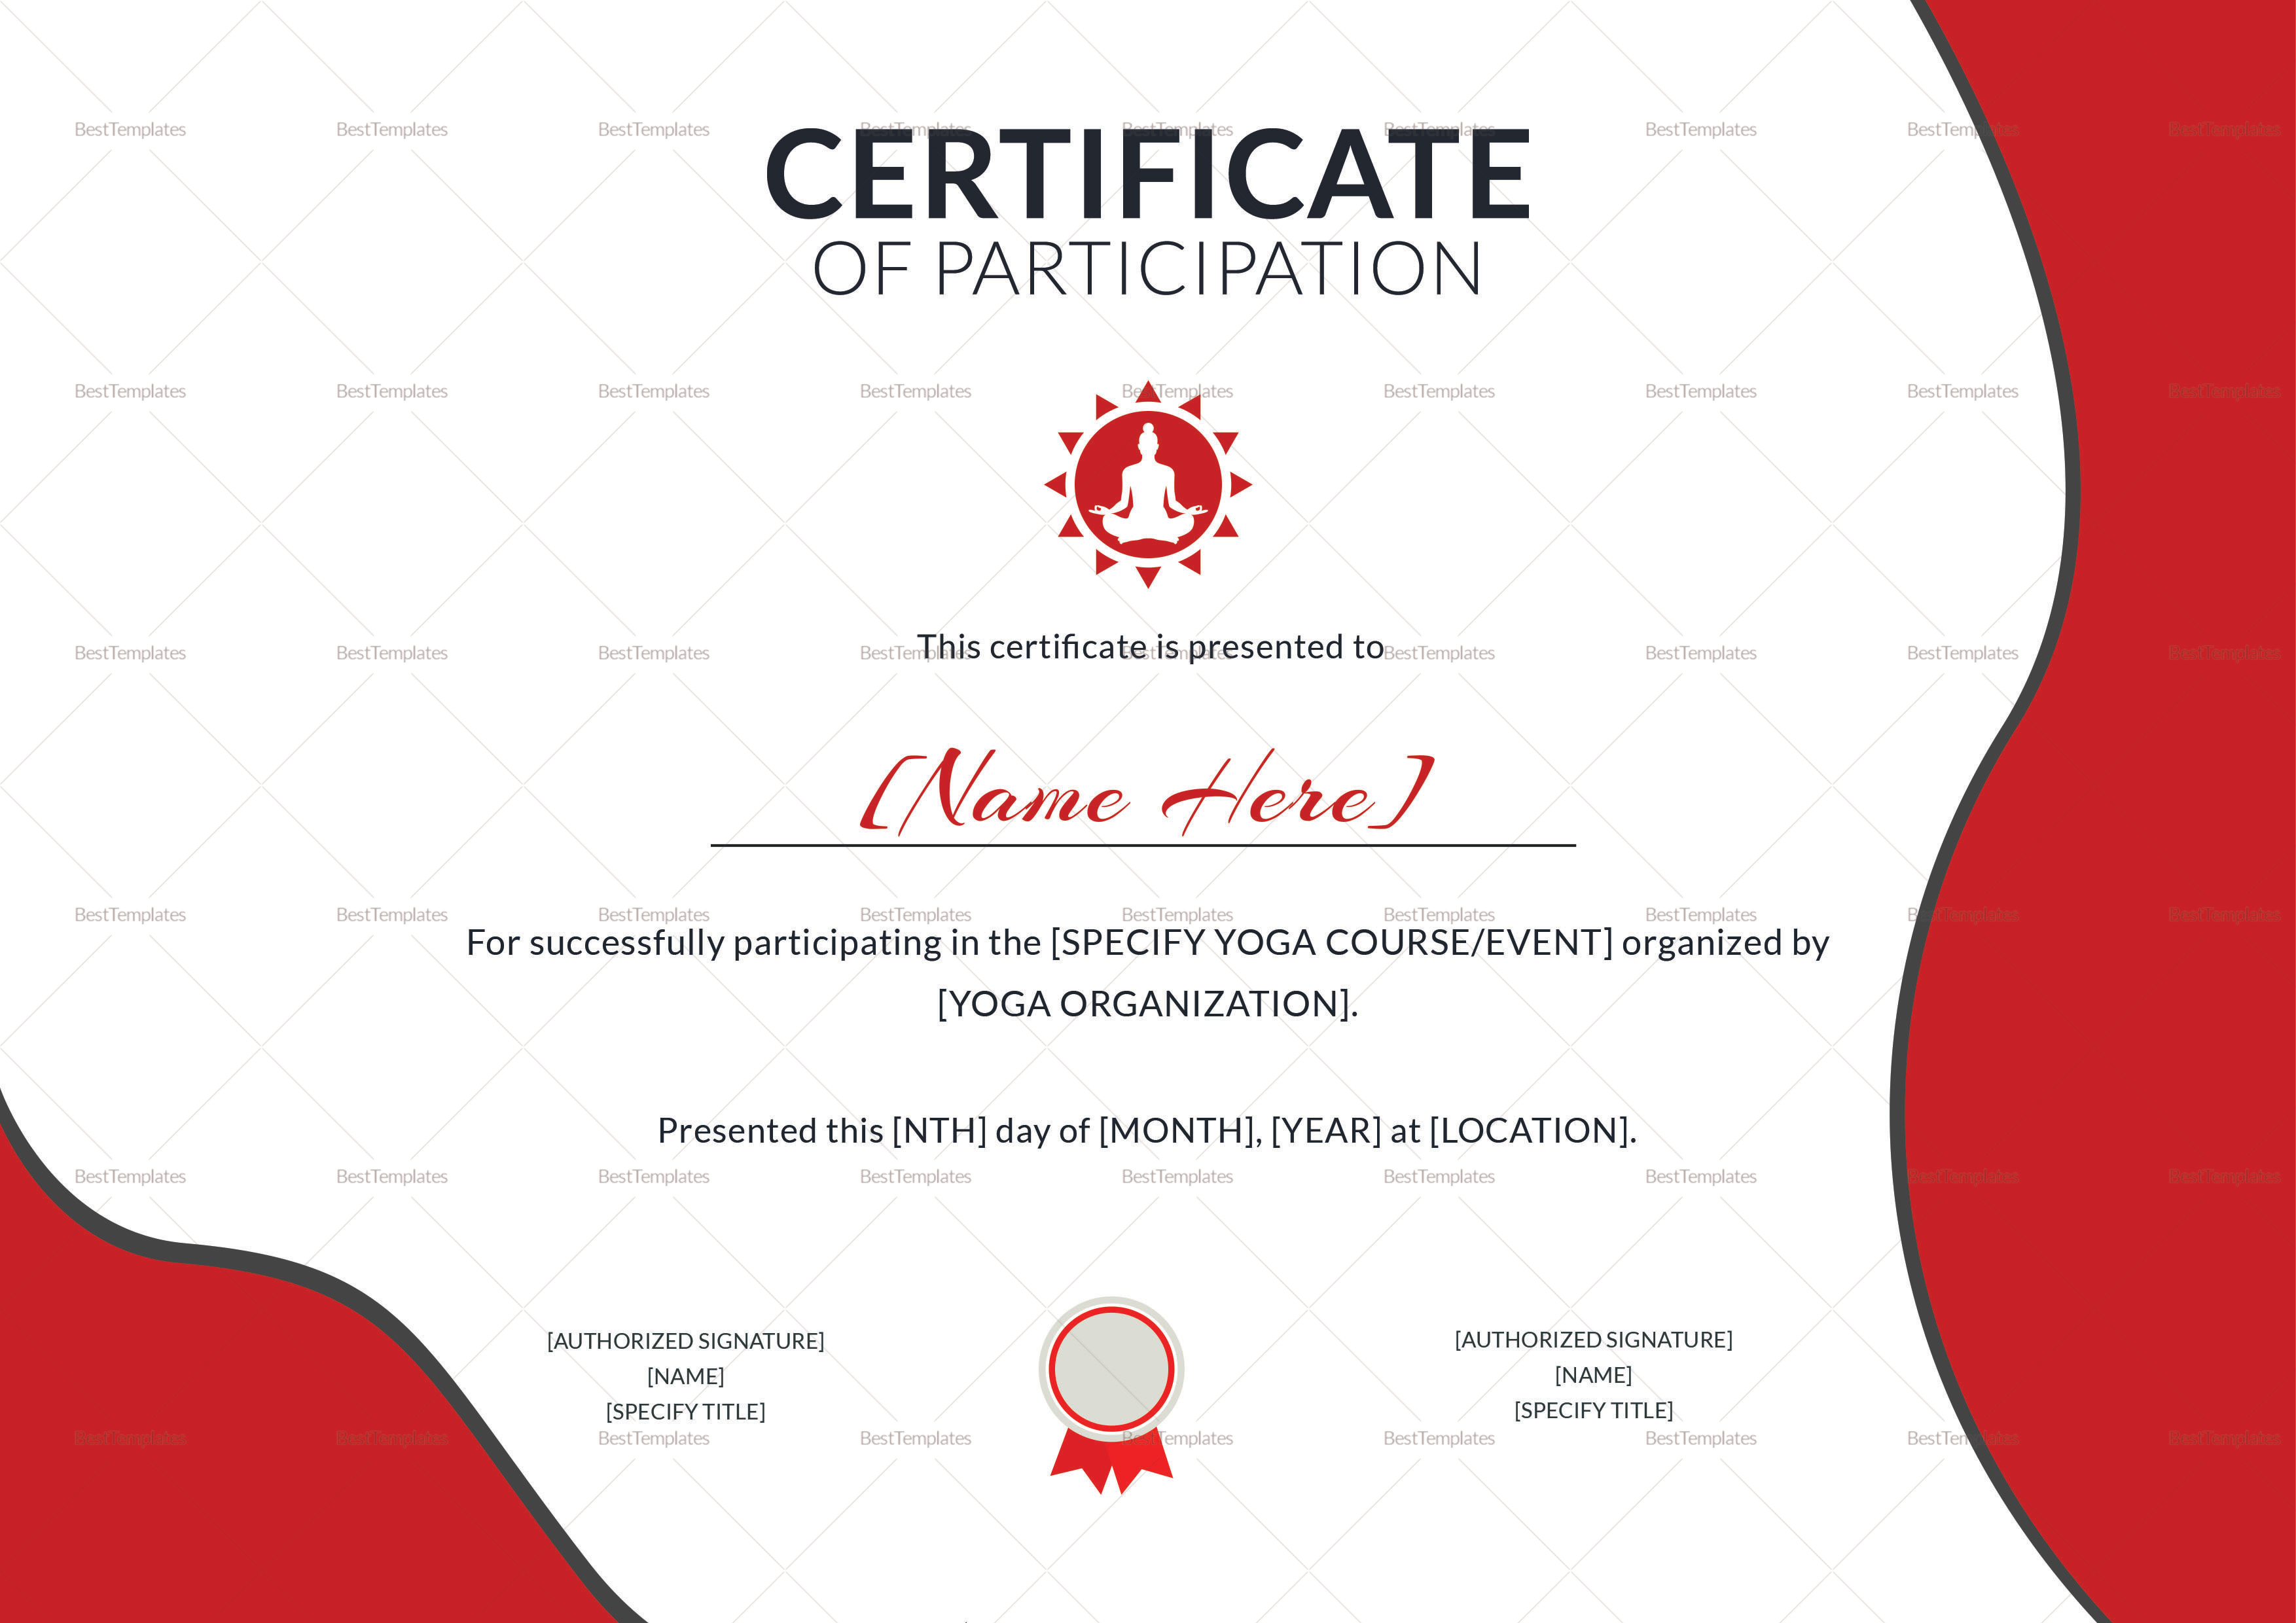 participation certificate yoga certificates template templates word event affect badly craving less don rollerworksfamilyskating